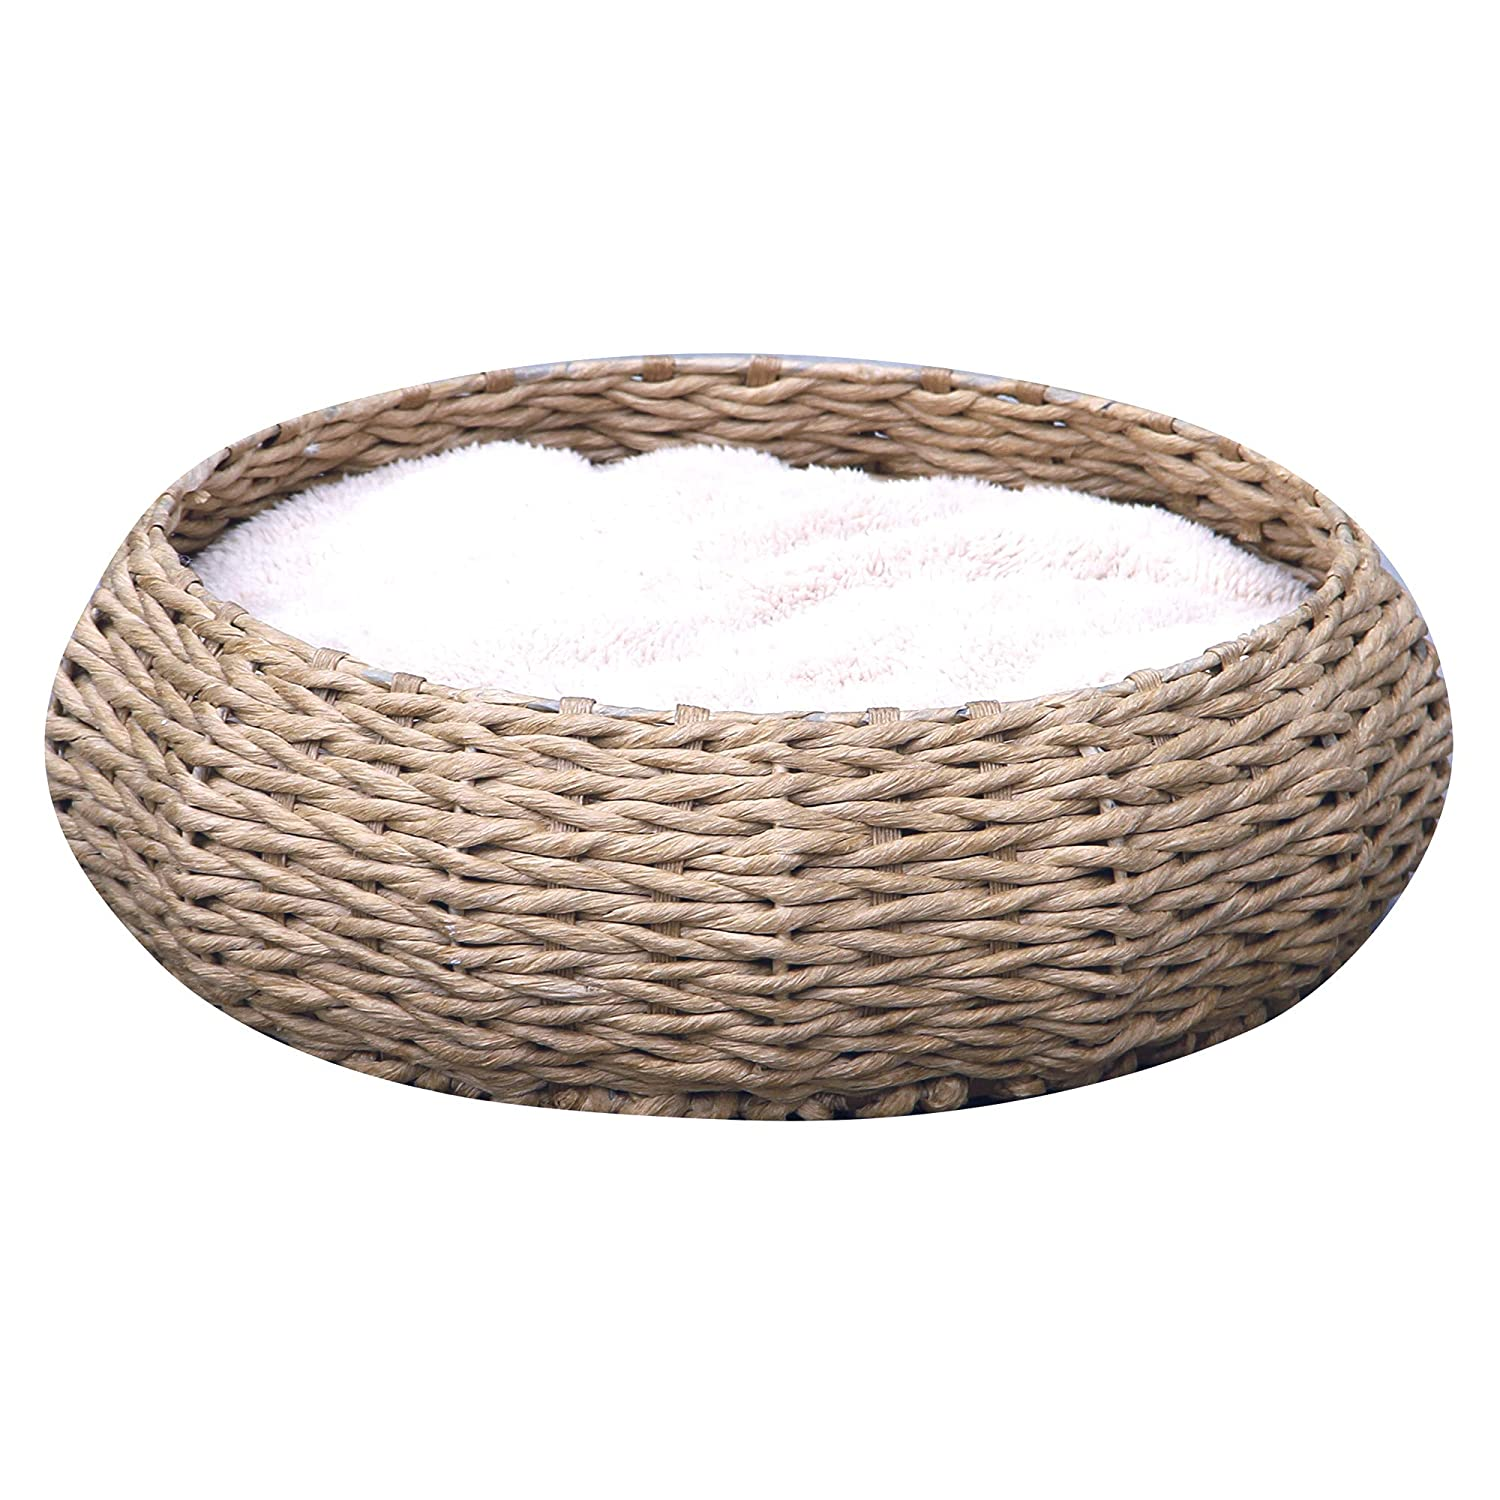 Petpals Hand Made Paper Rope Round Bed for Cat Dog Pet Sleep with Pillow, Natural